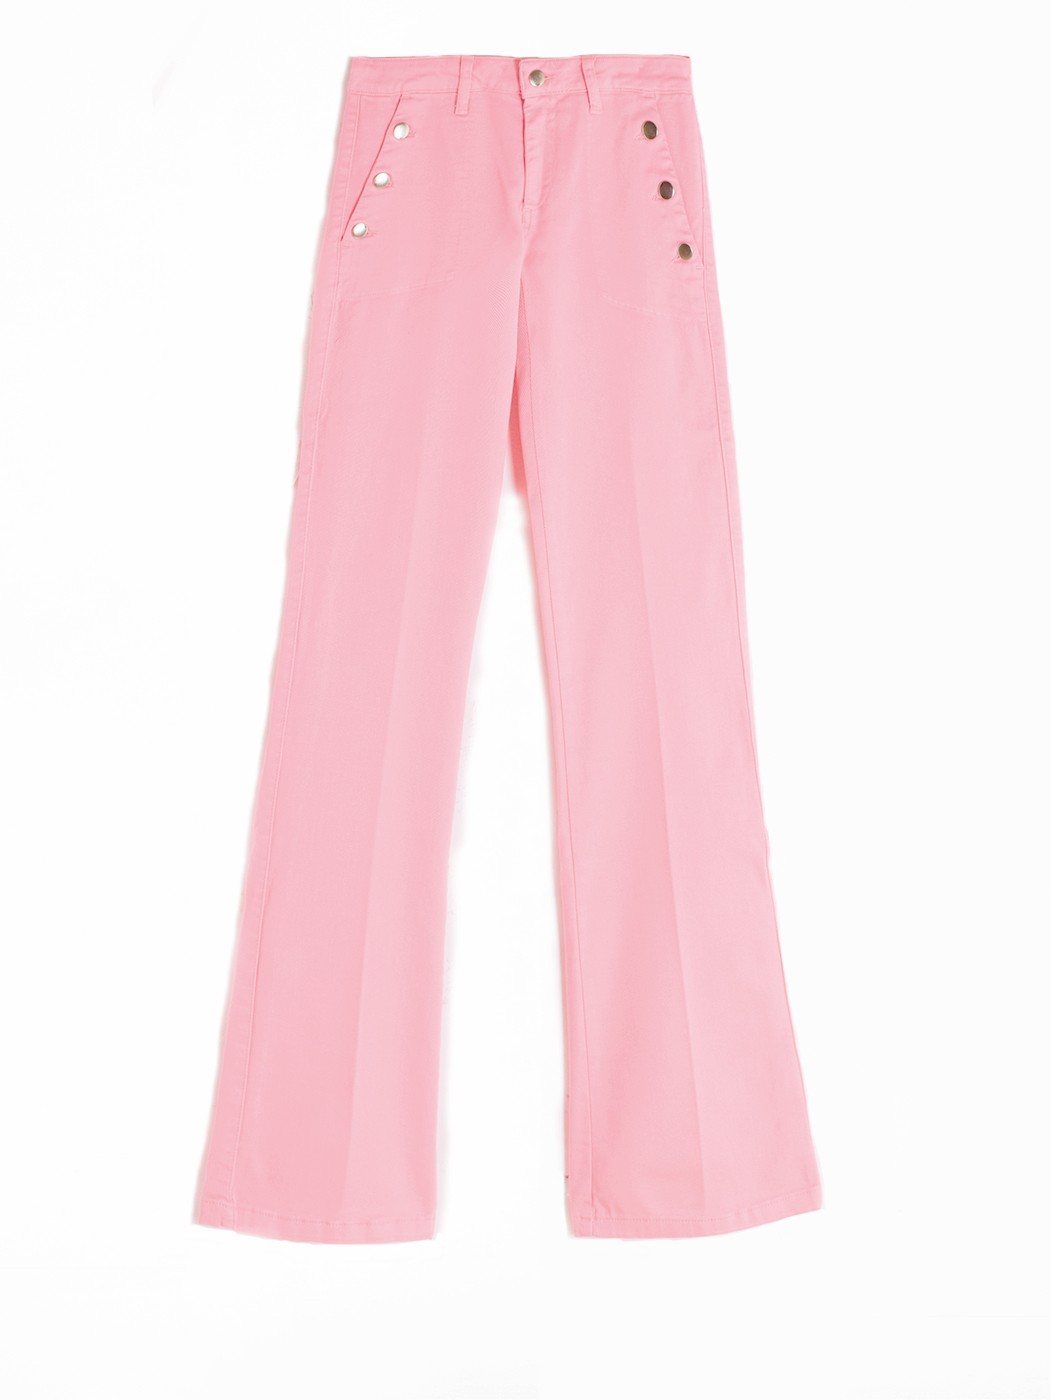 DENISE PINK TROUSERS